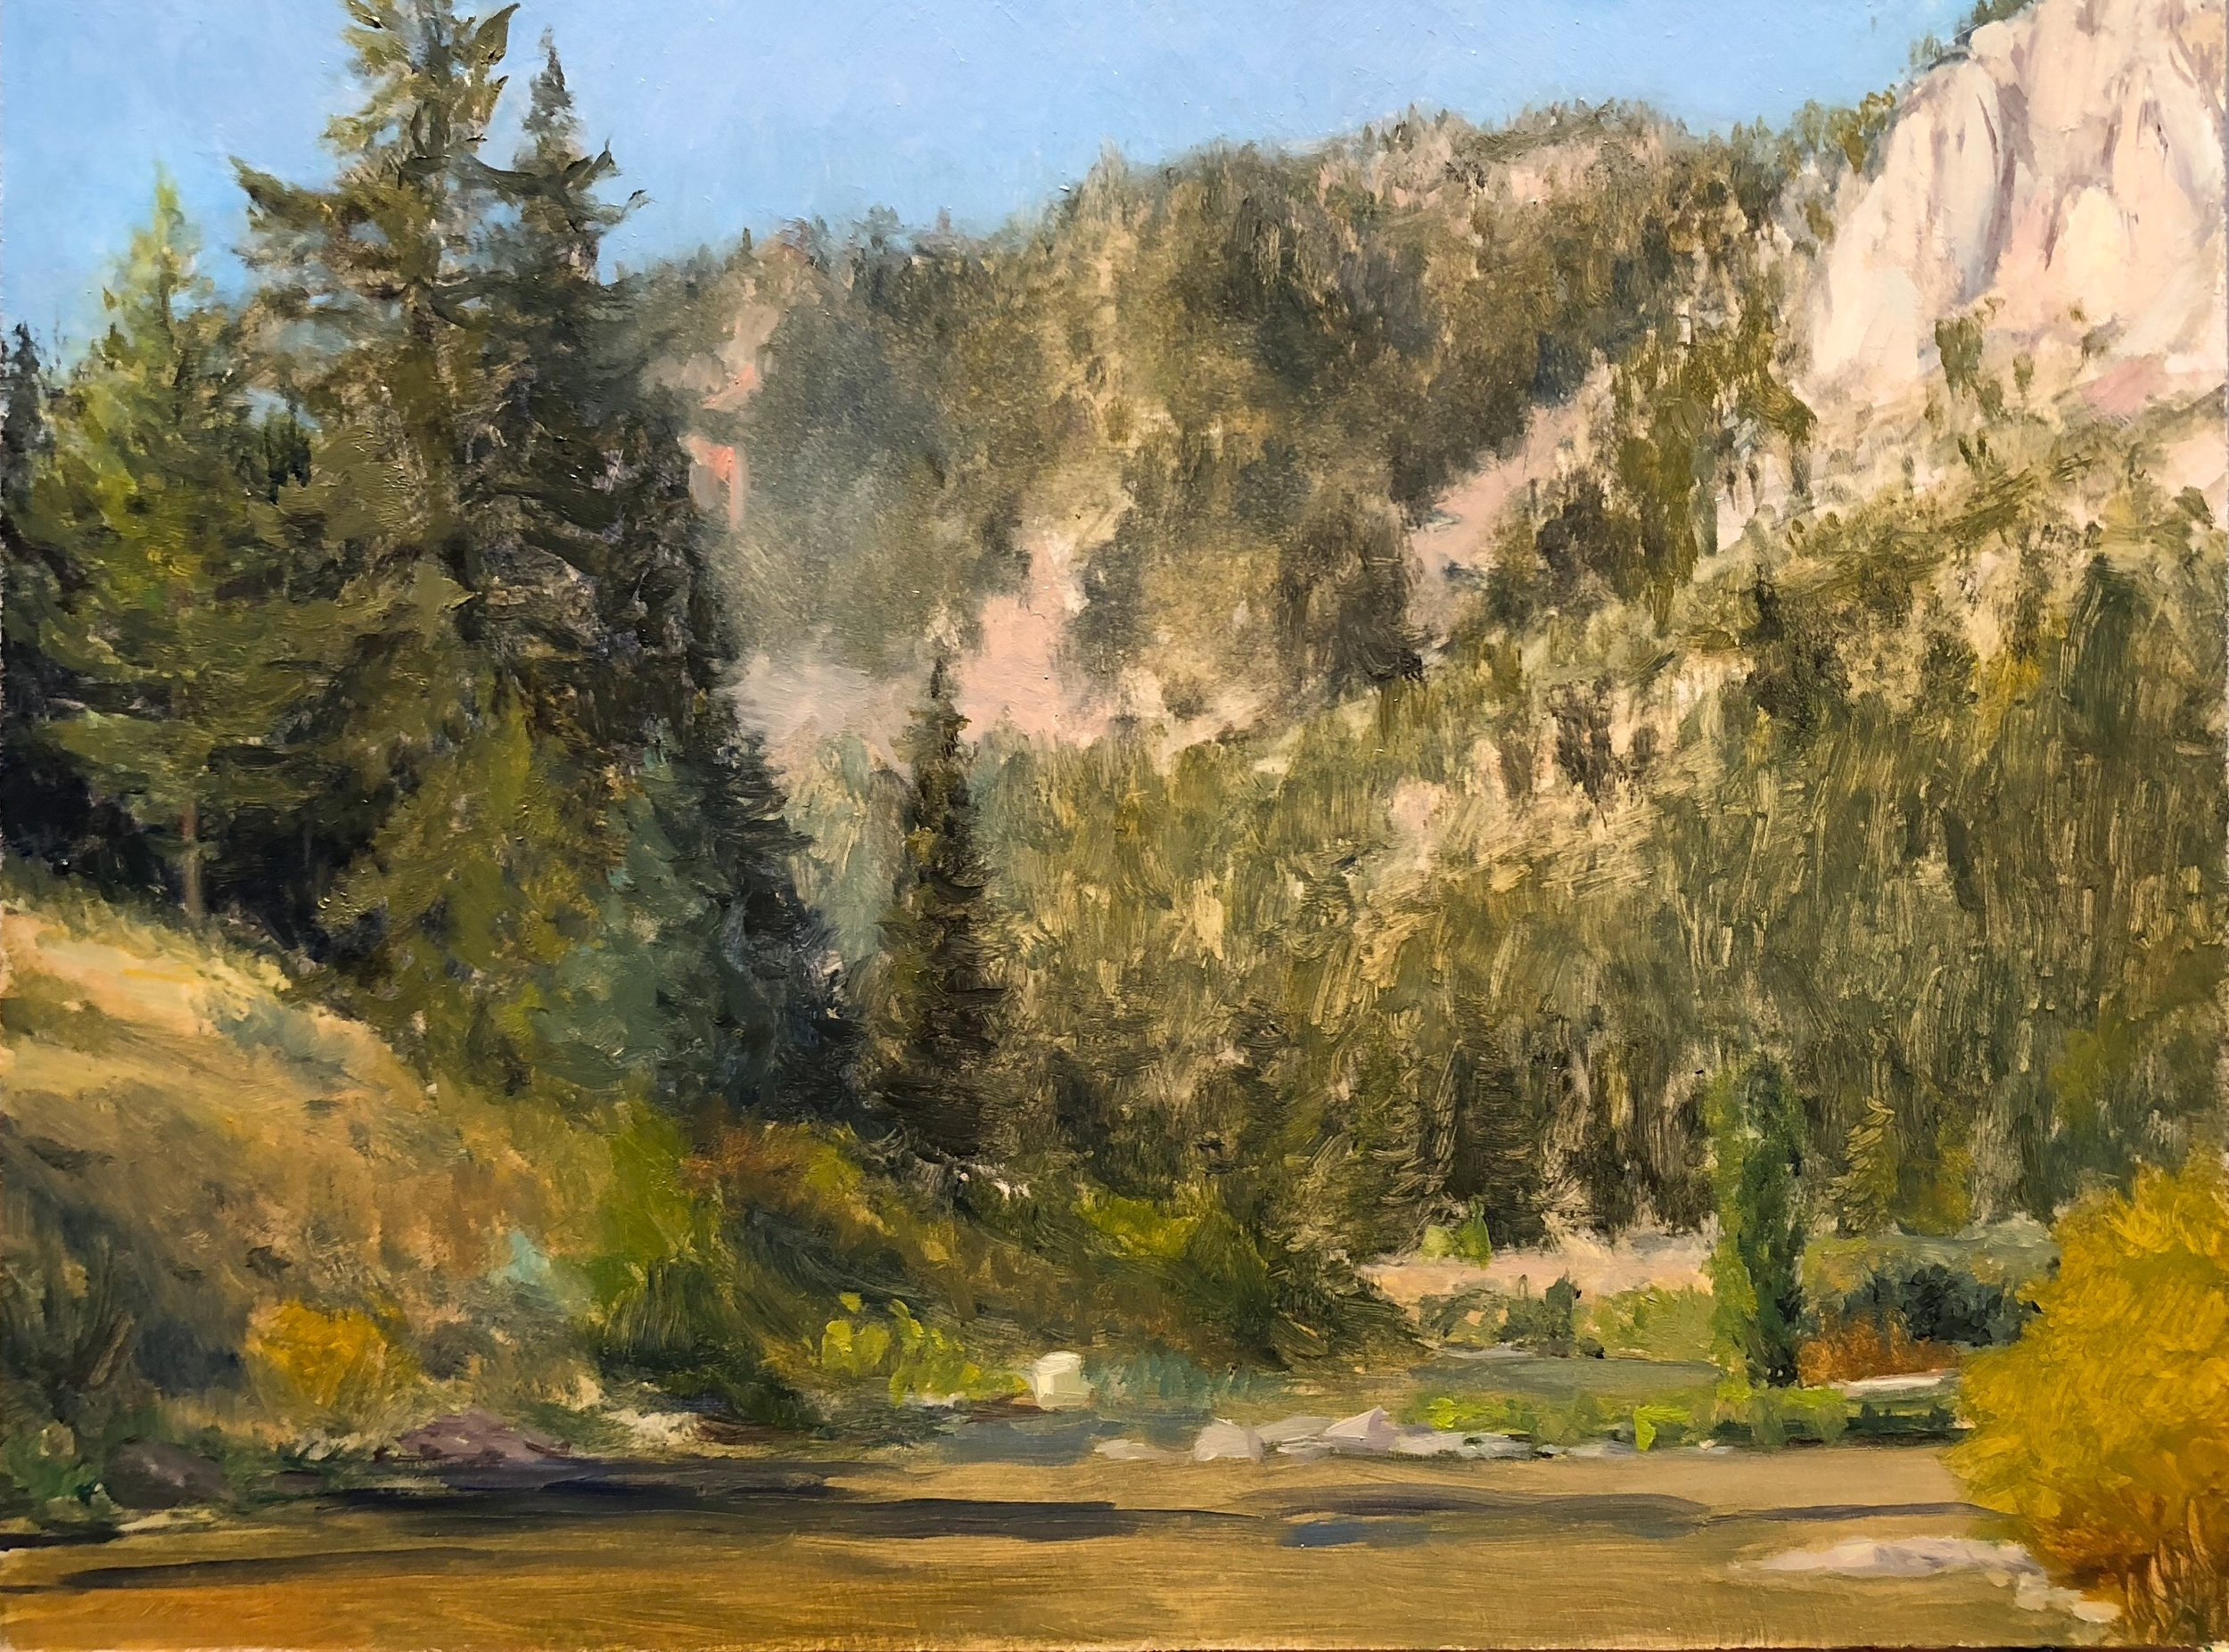 Flat Creek, Wyoming  2018 6 by 8 inches Oil on linen panel